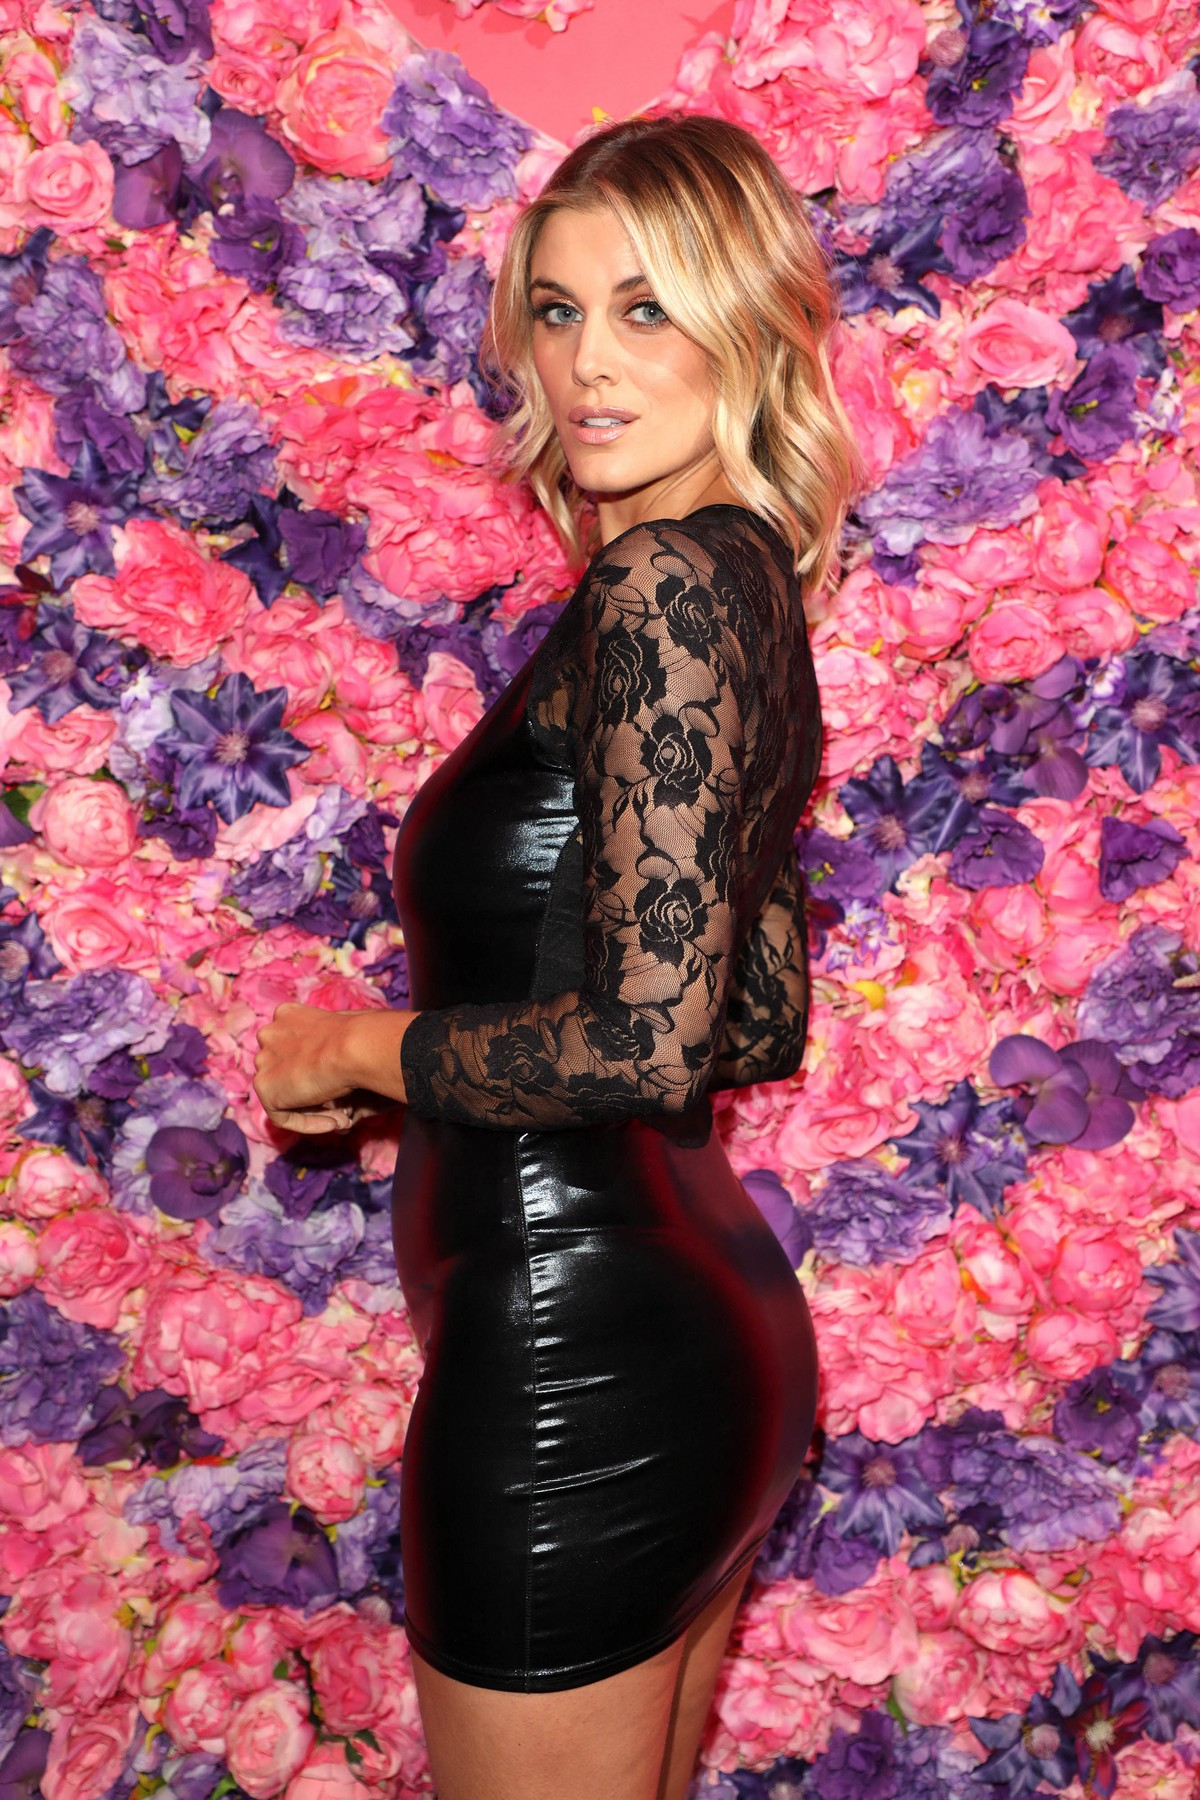 Ashley James Opens Lovehoney Pop Up Christmas Gift Shop in London 2019/11/01 3